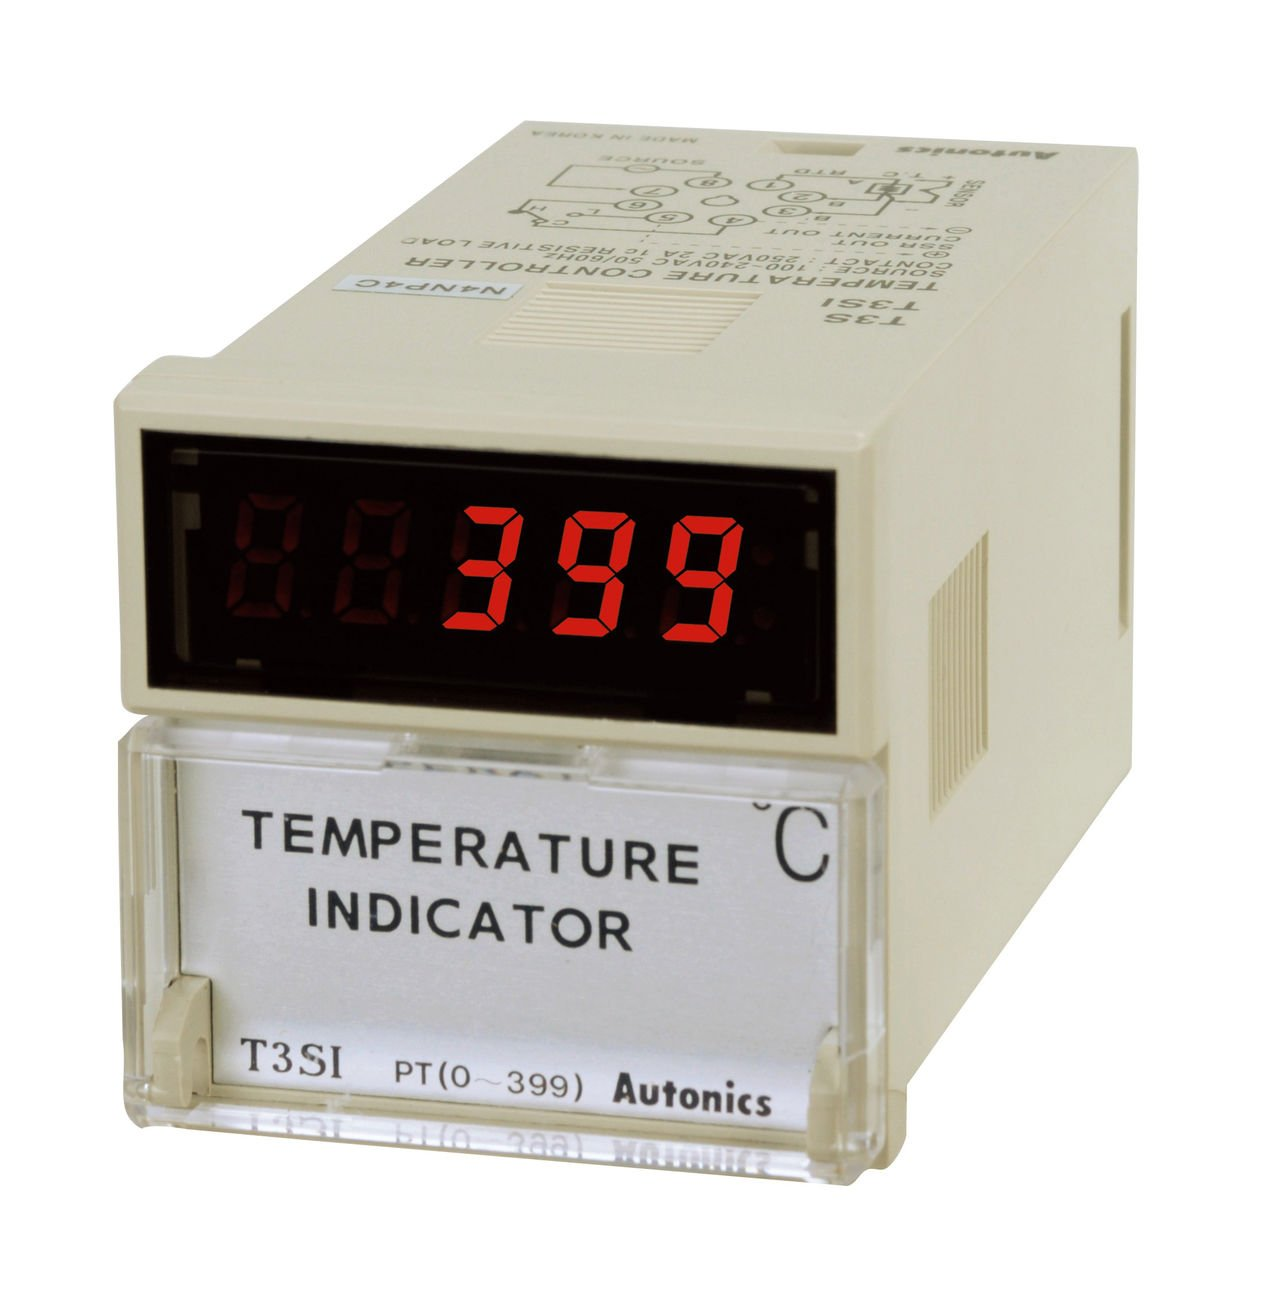 Autonics T3SI-N4NJ4C Temperature Indicator, 1/16 DIN, J Thermocouple Input, 399 C, 100-240 VAC by Autonics USA, Inc